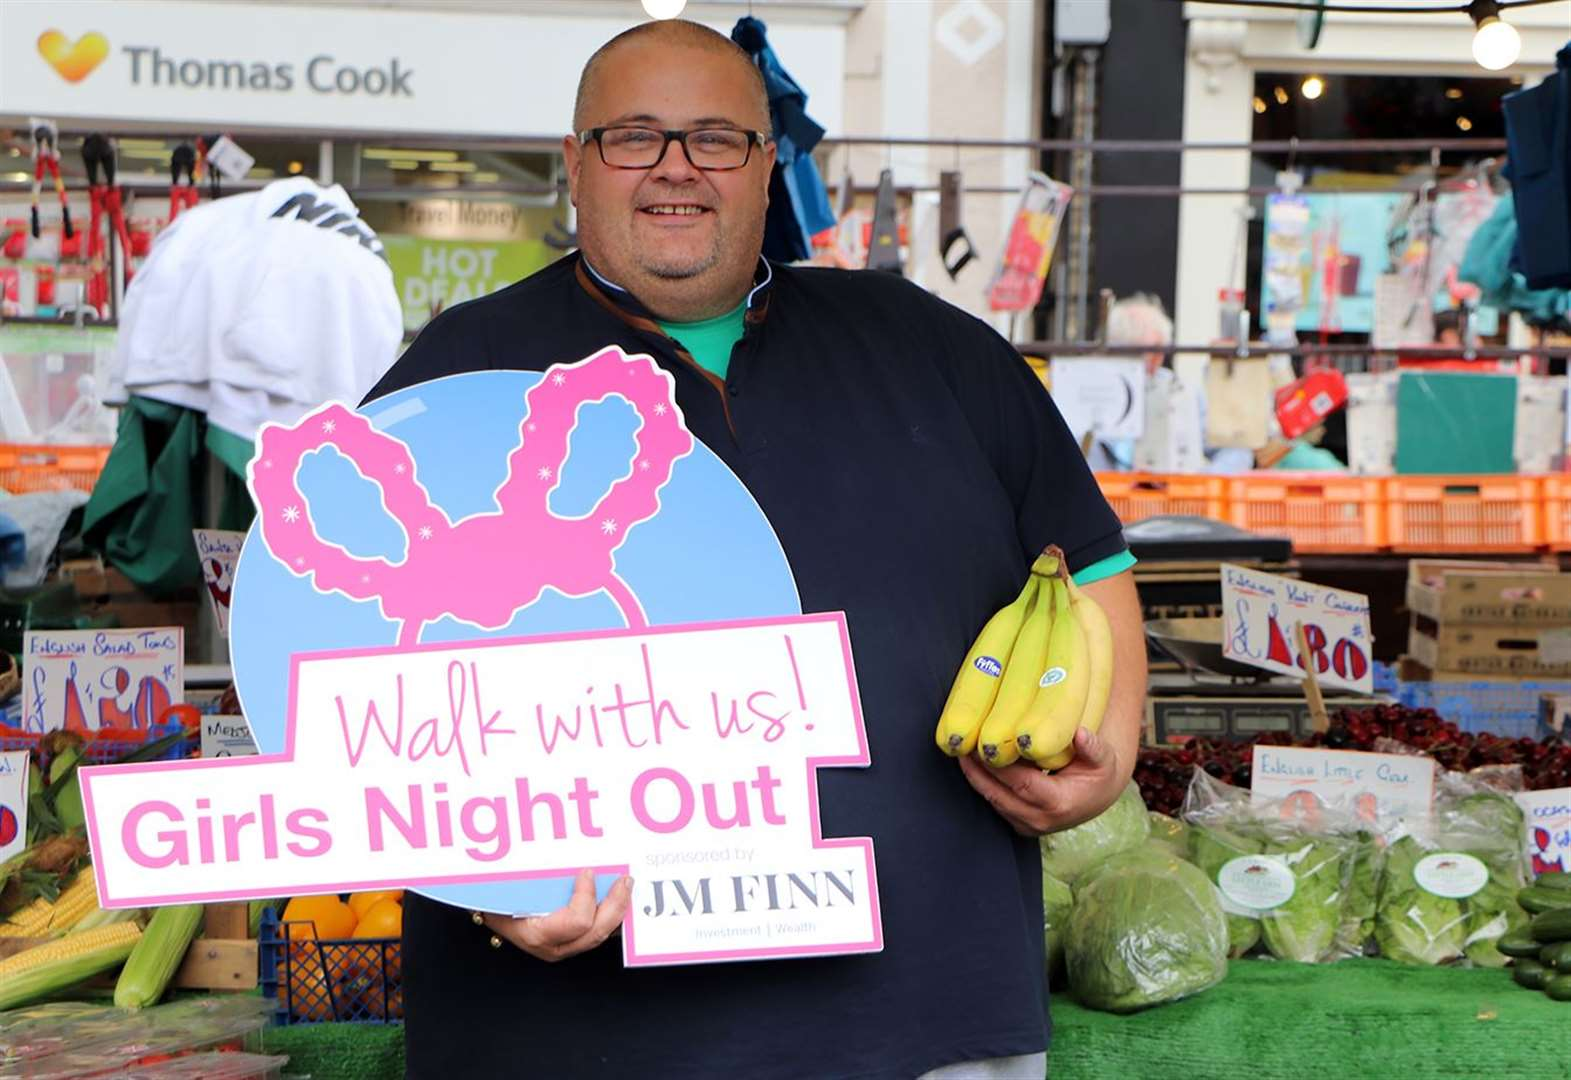 Market traders get behind charity